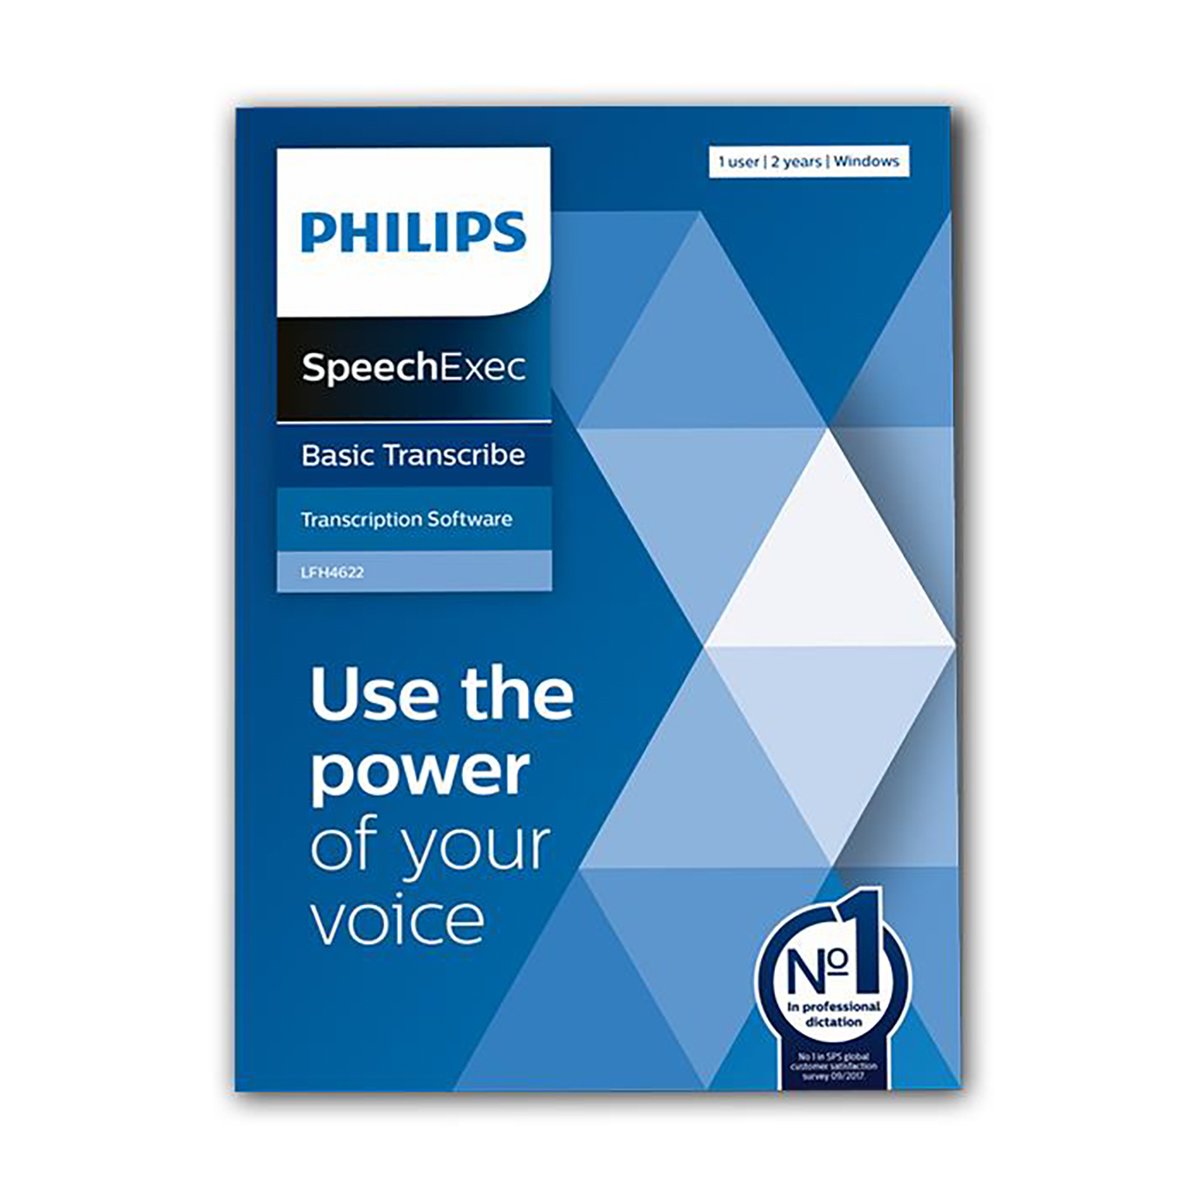 Philips LFH4622 SpeechExec 11 Transcribe 2 Year Subscription Boxed